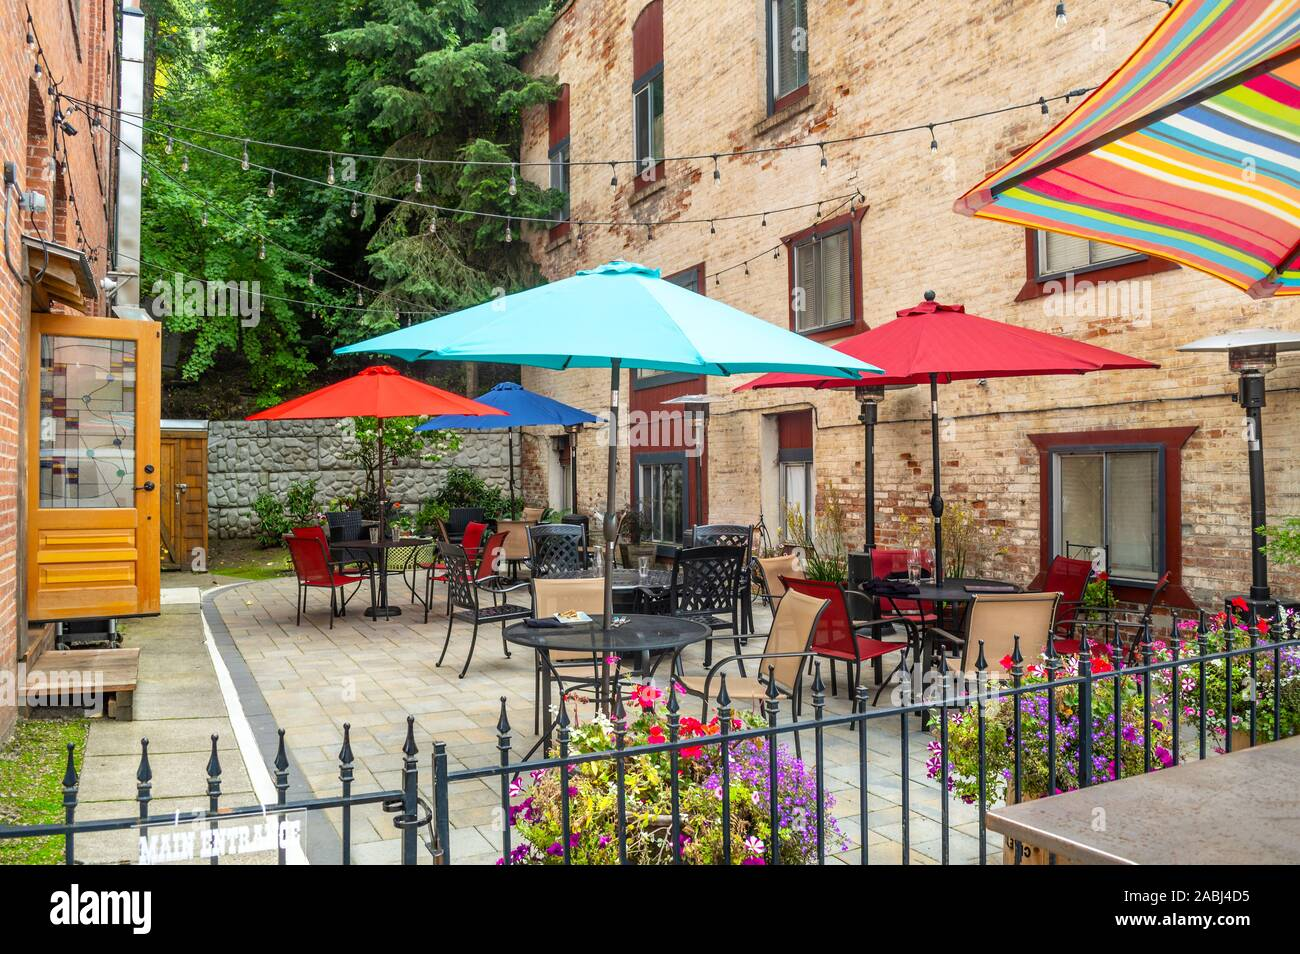 A colorful outdoor patio sidewalk cafe in the historic city of Wallace, Idaho, in the Silver Valley area of North Idaho, USA Stock Photo